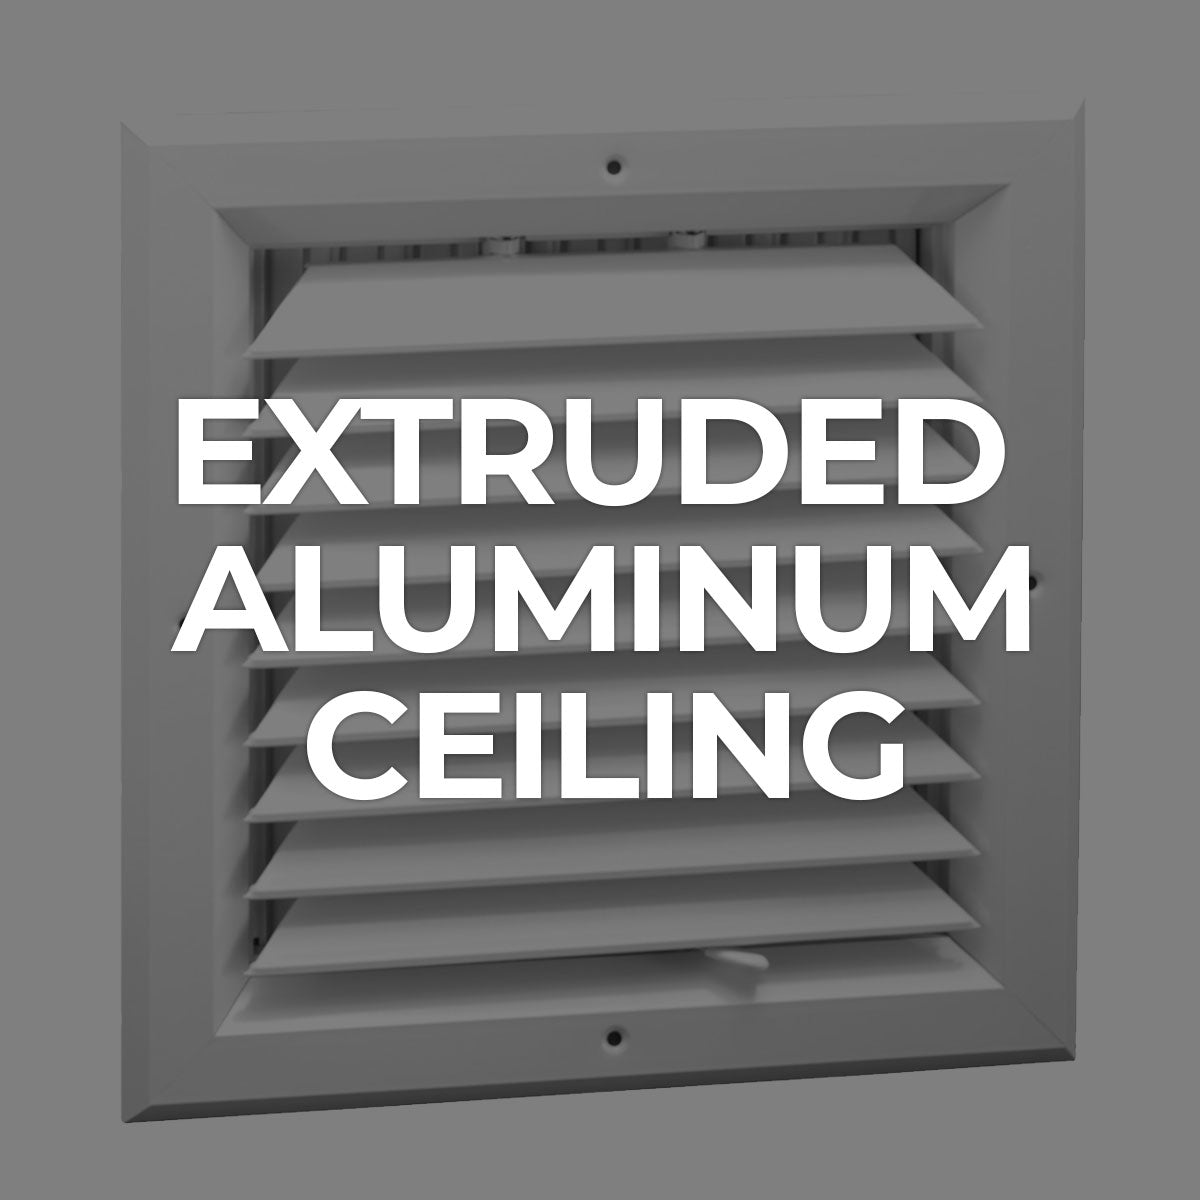 Supply / Extruded Aluminum Ceiling